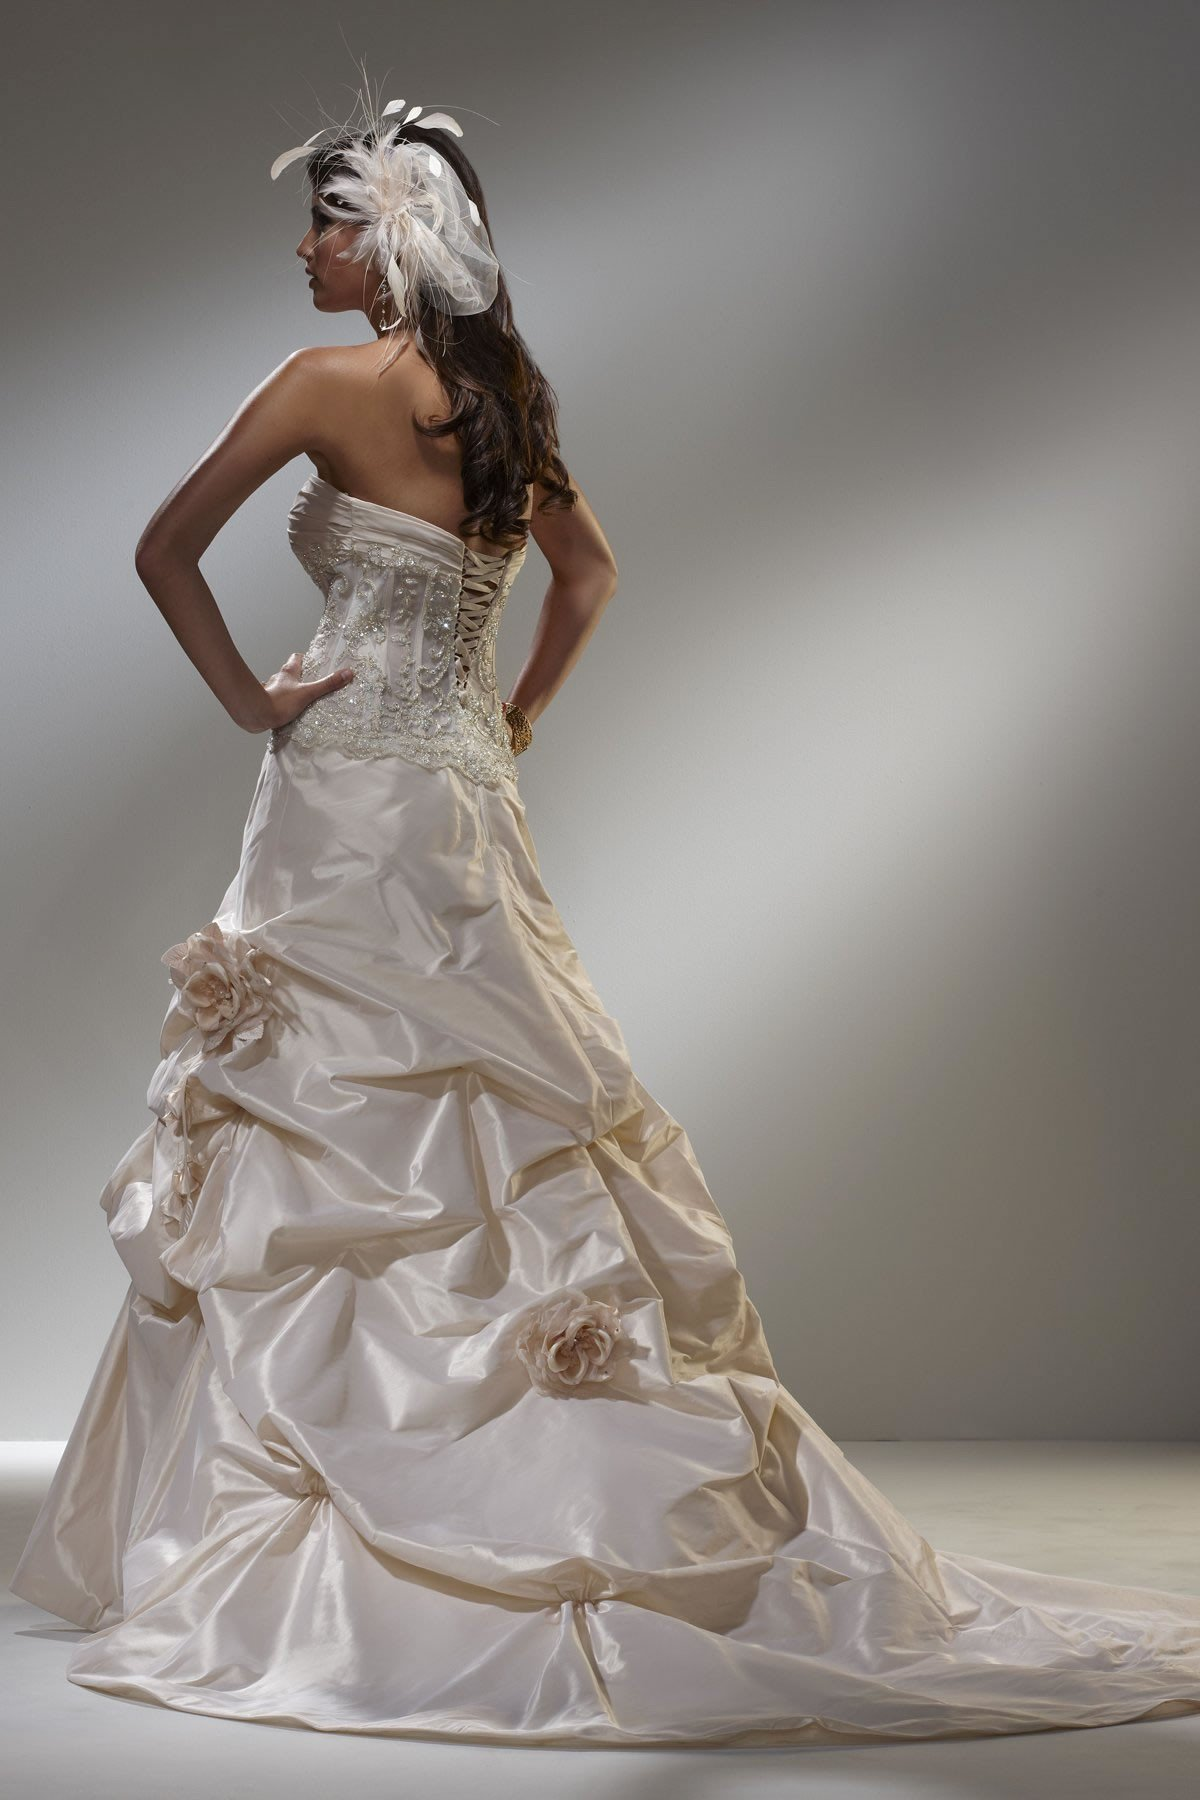 Gorgeous Wedding Gown Featuring a Sheer from maryswillcom  Epic